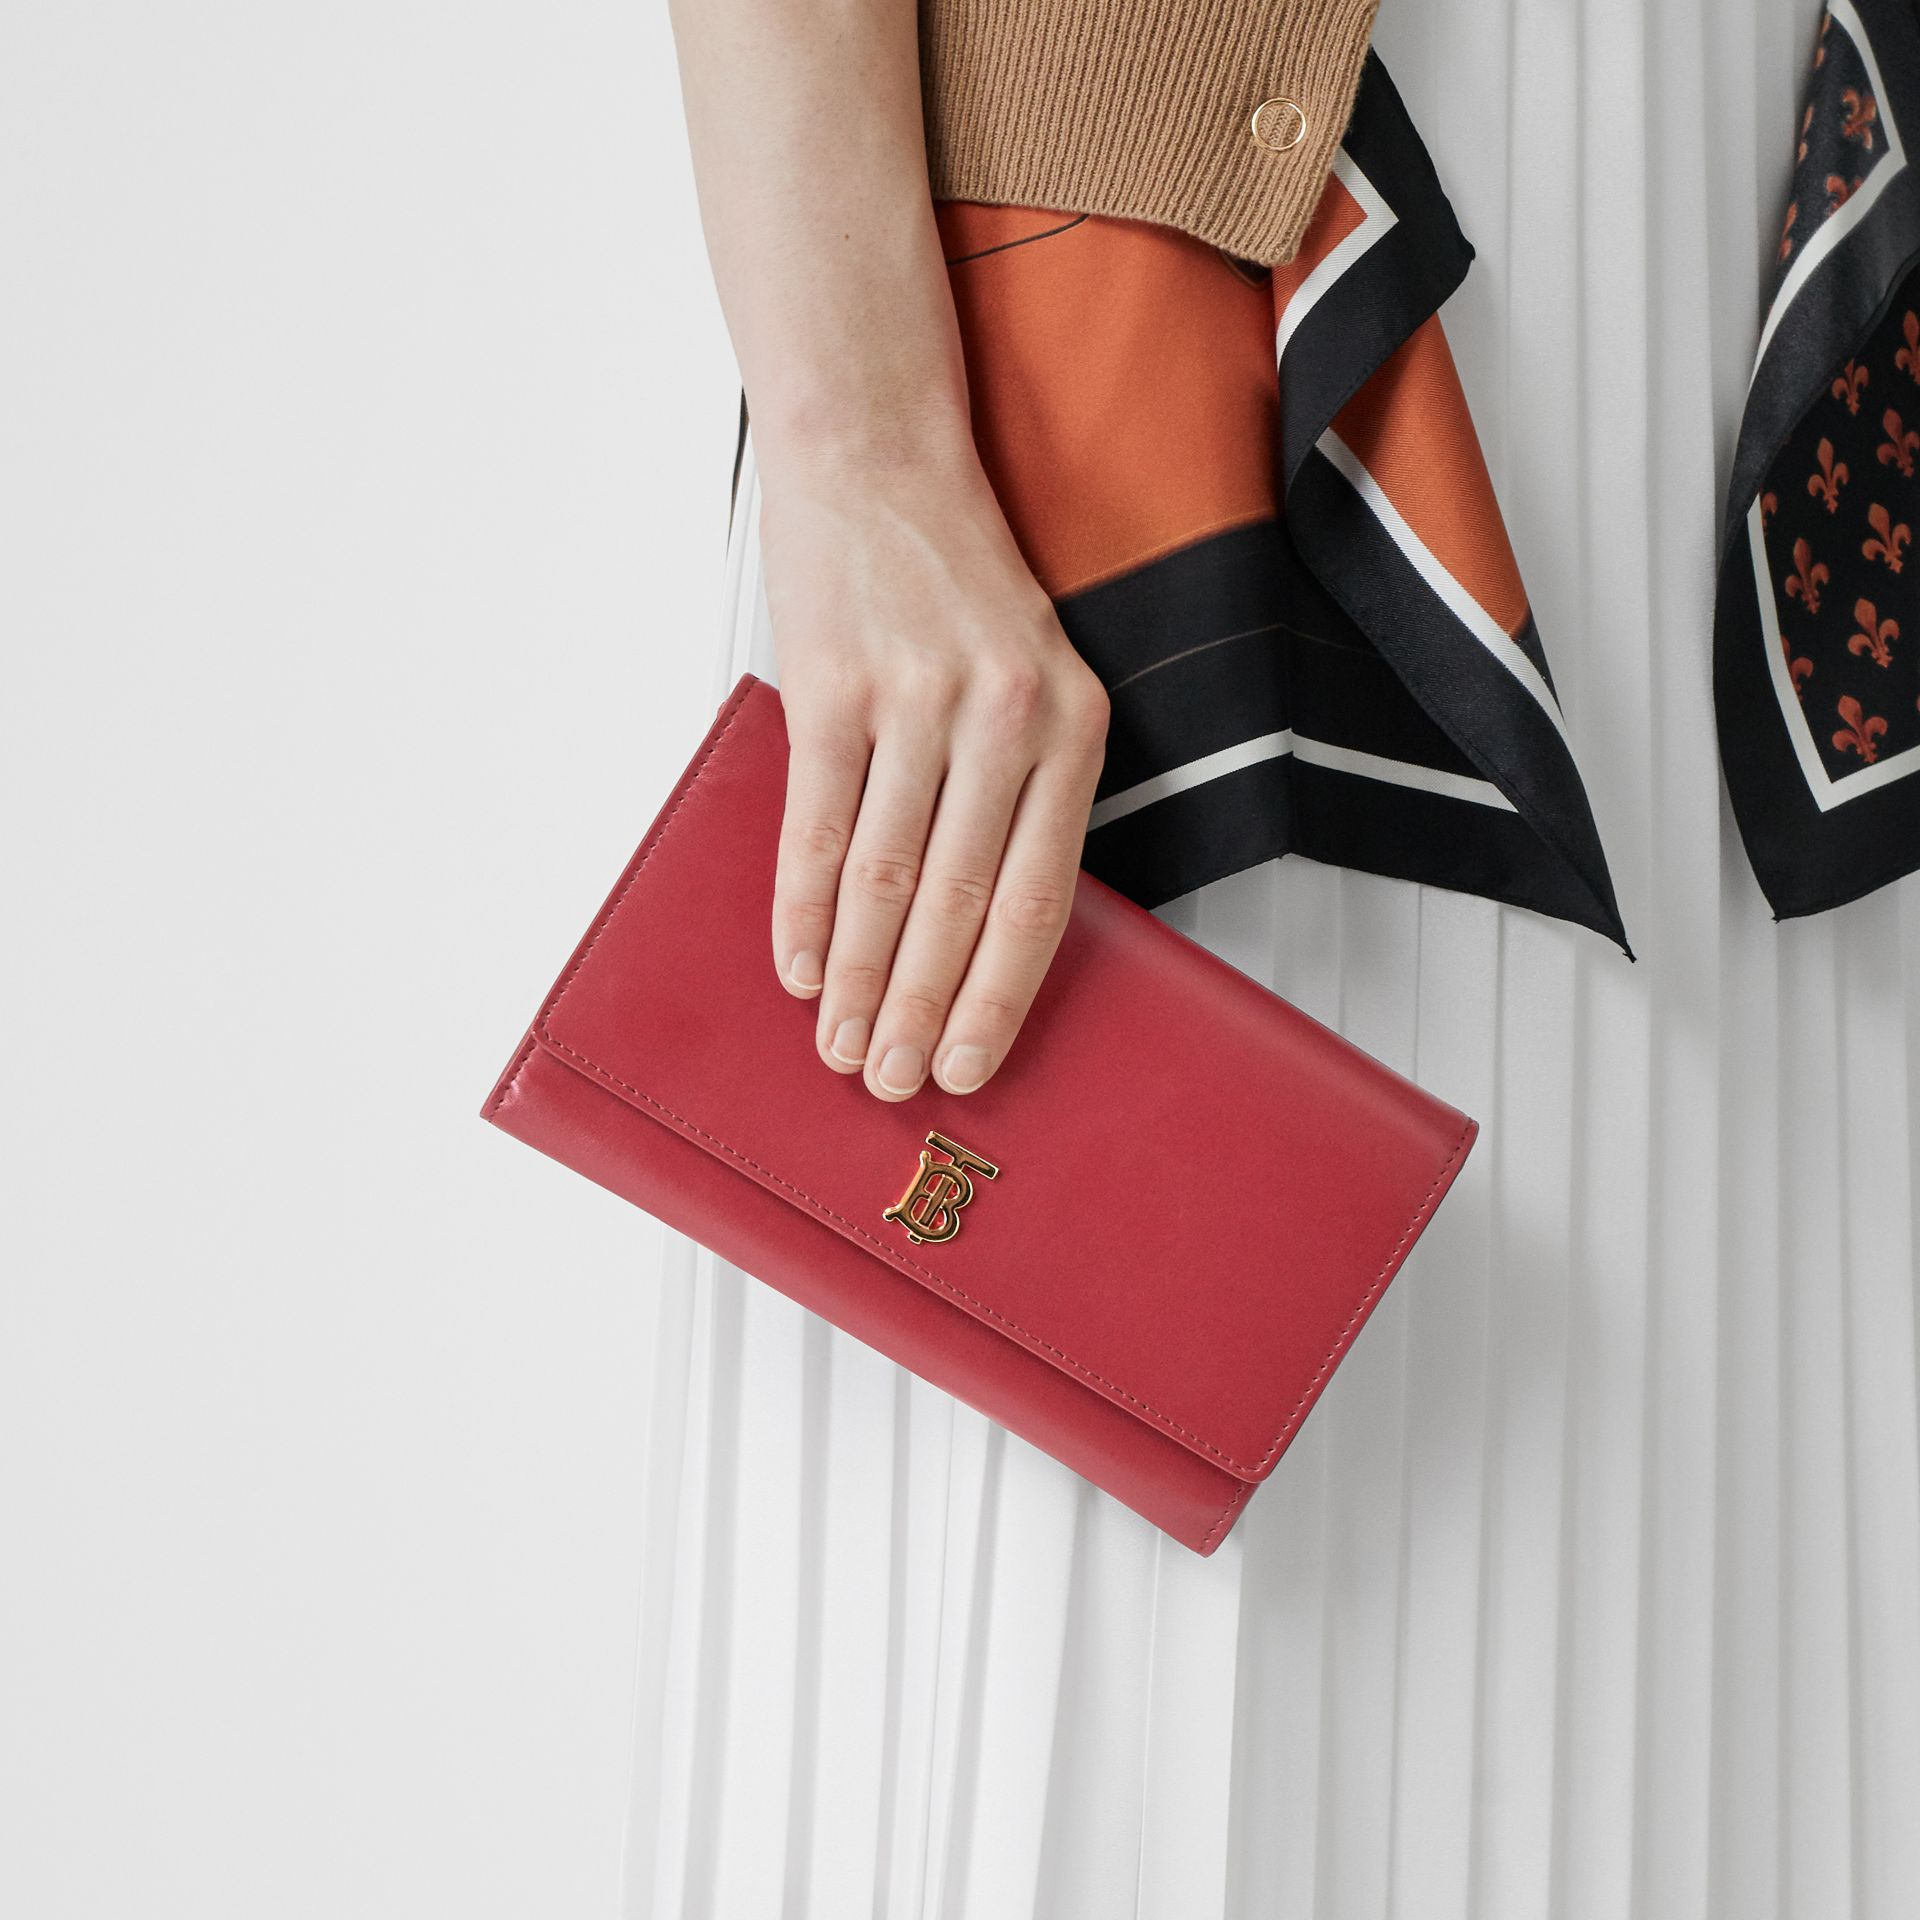 Monogram Motif Leather Wallet with Detachable Strap in Crimson - Women | Burberry Singapore - gallery image 2